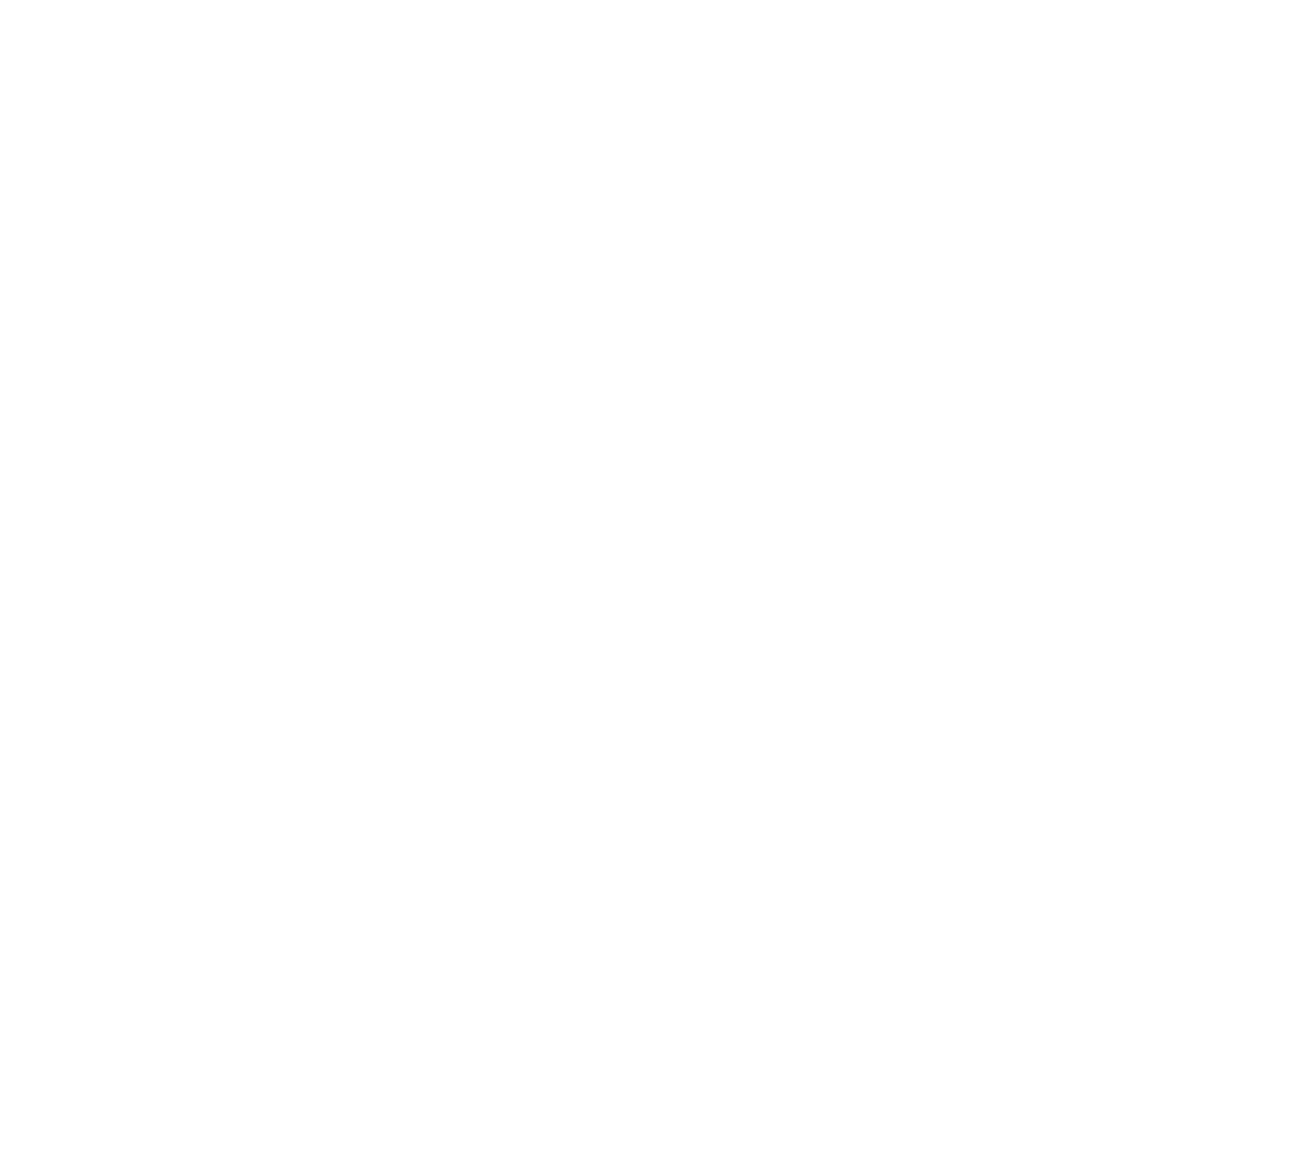 White Silhouette Png at GetDrawings